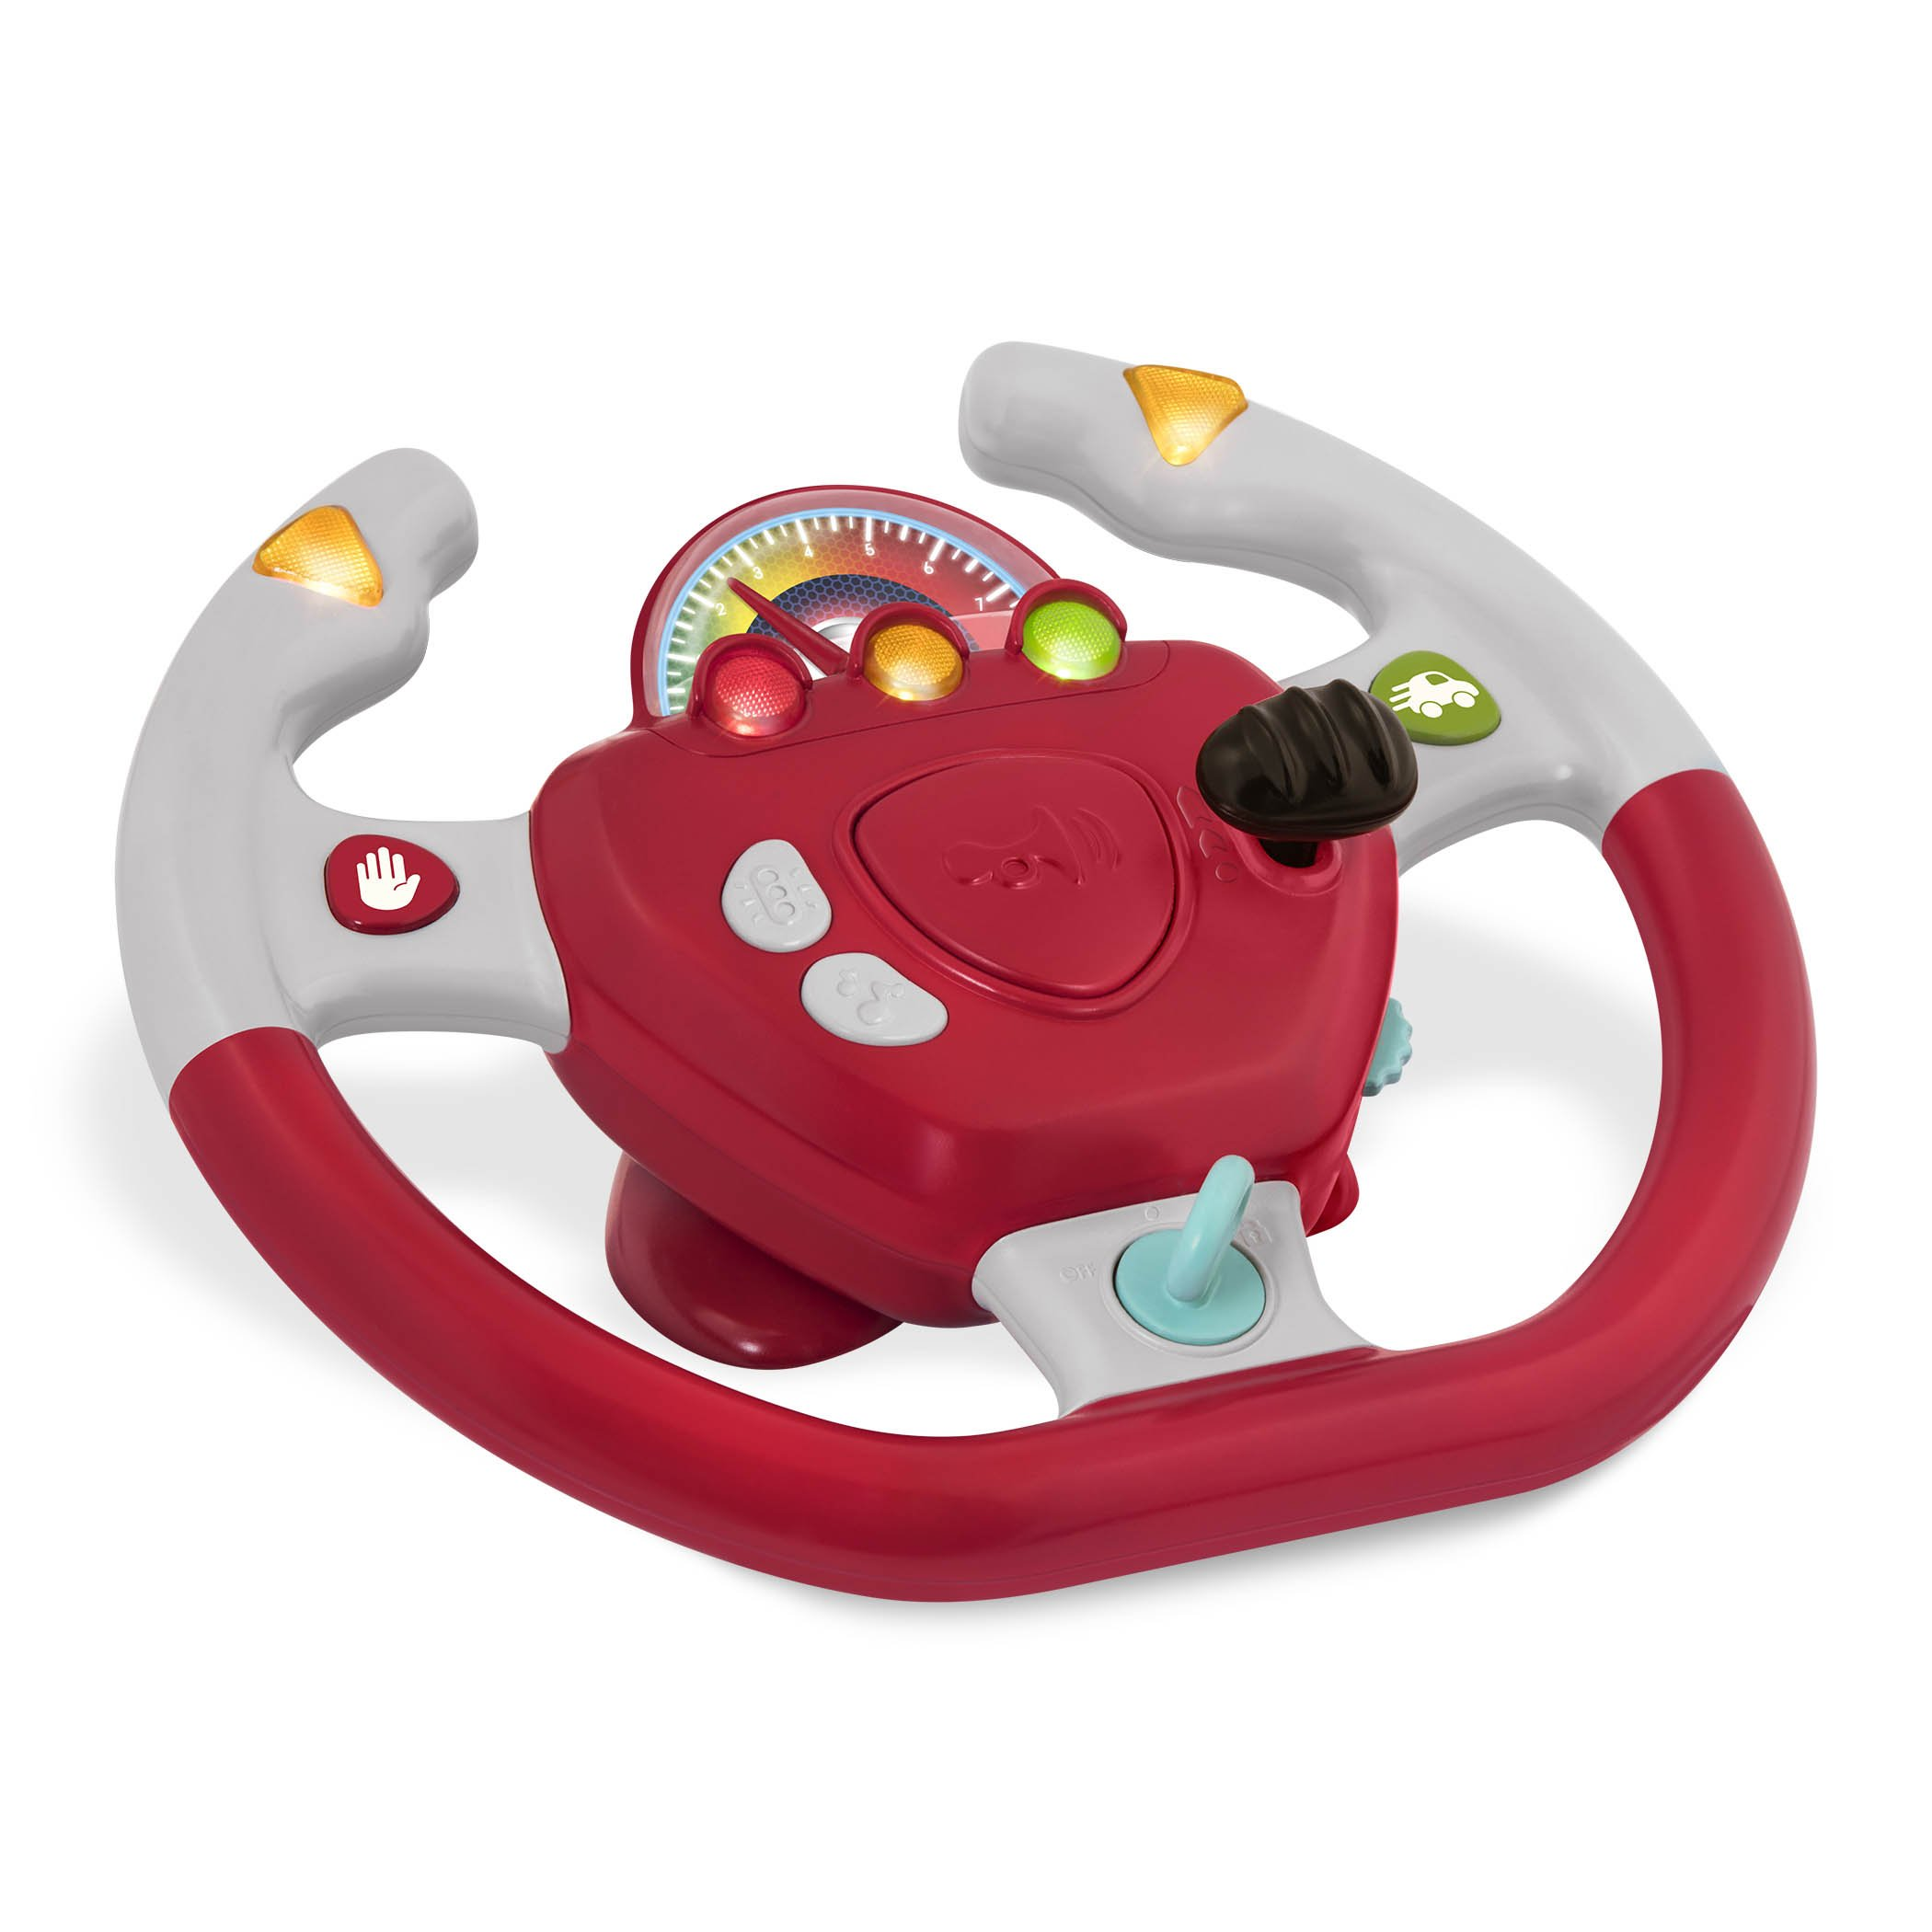 Battat - Geared to Steer Interactive Driving Wheel - Portable Pretend Play Toy Steering Wheel for Kids 2 years + by Battat (Image #2)